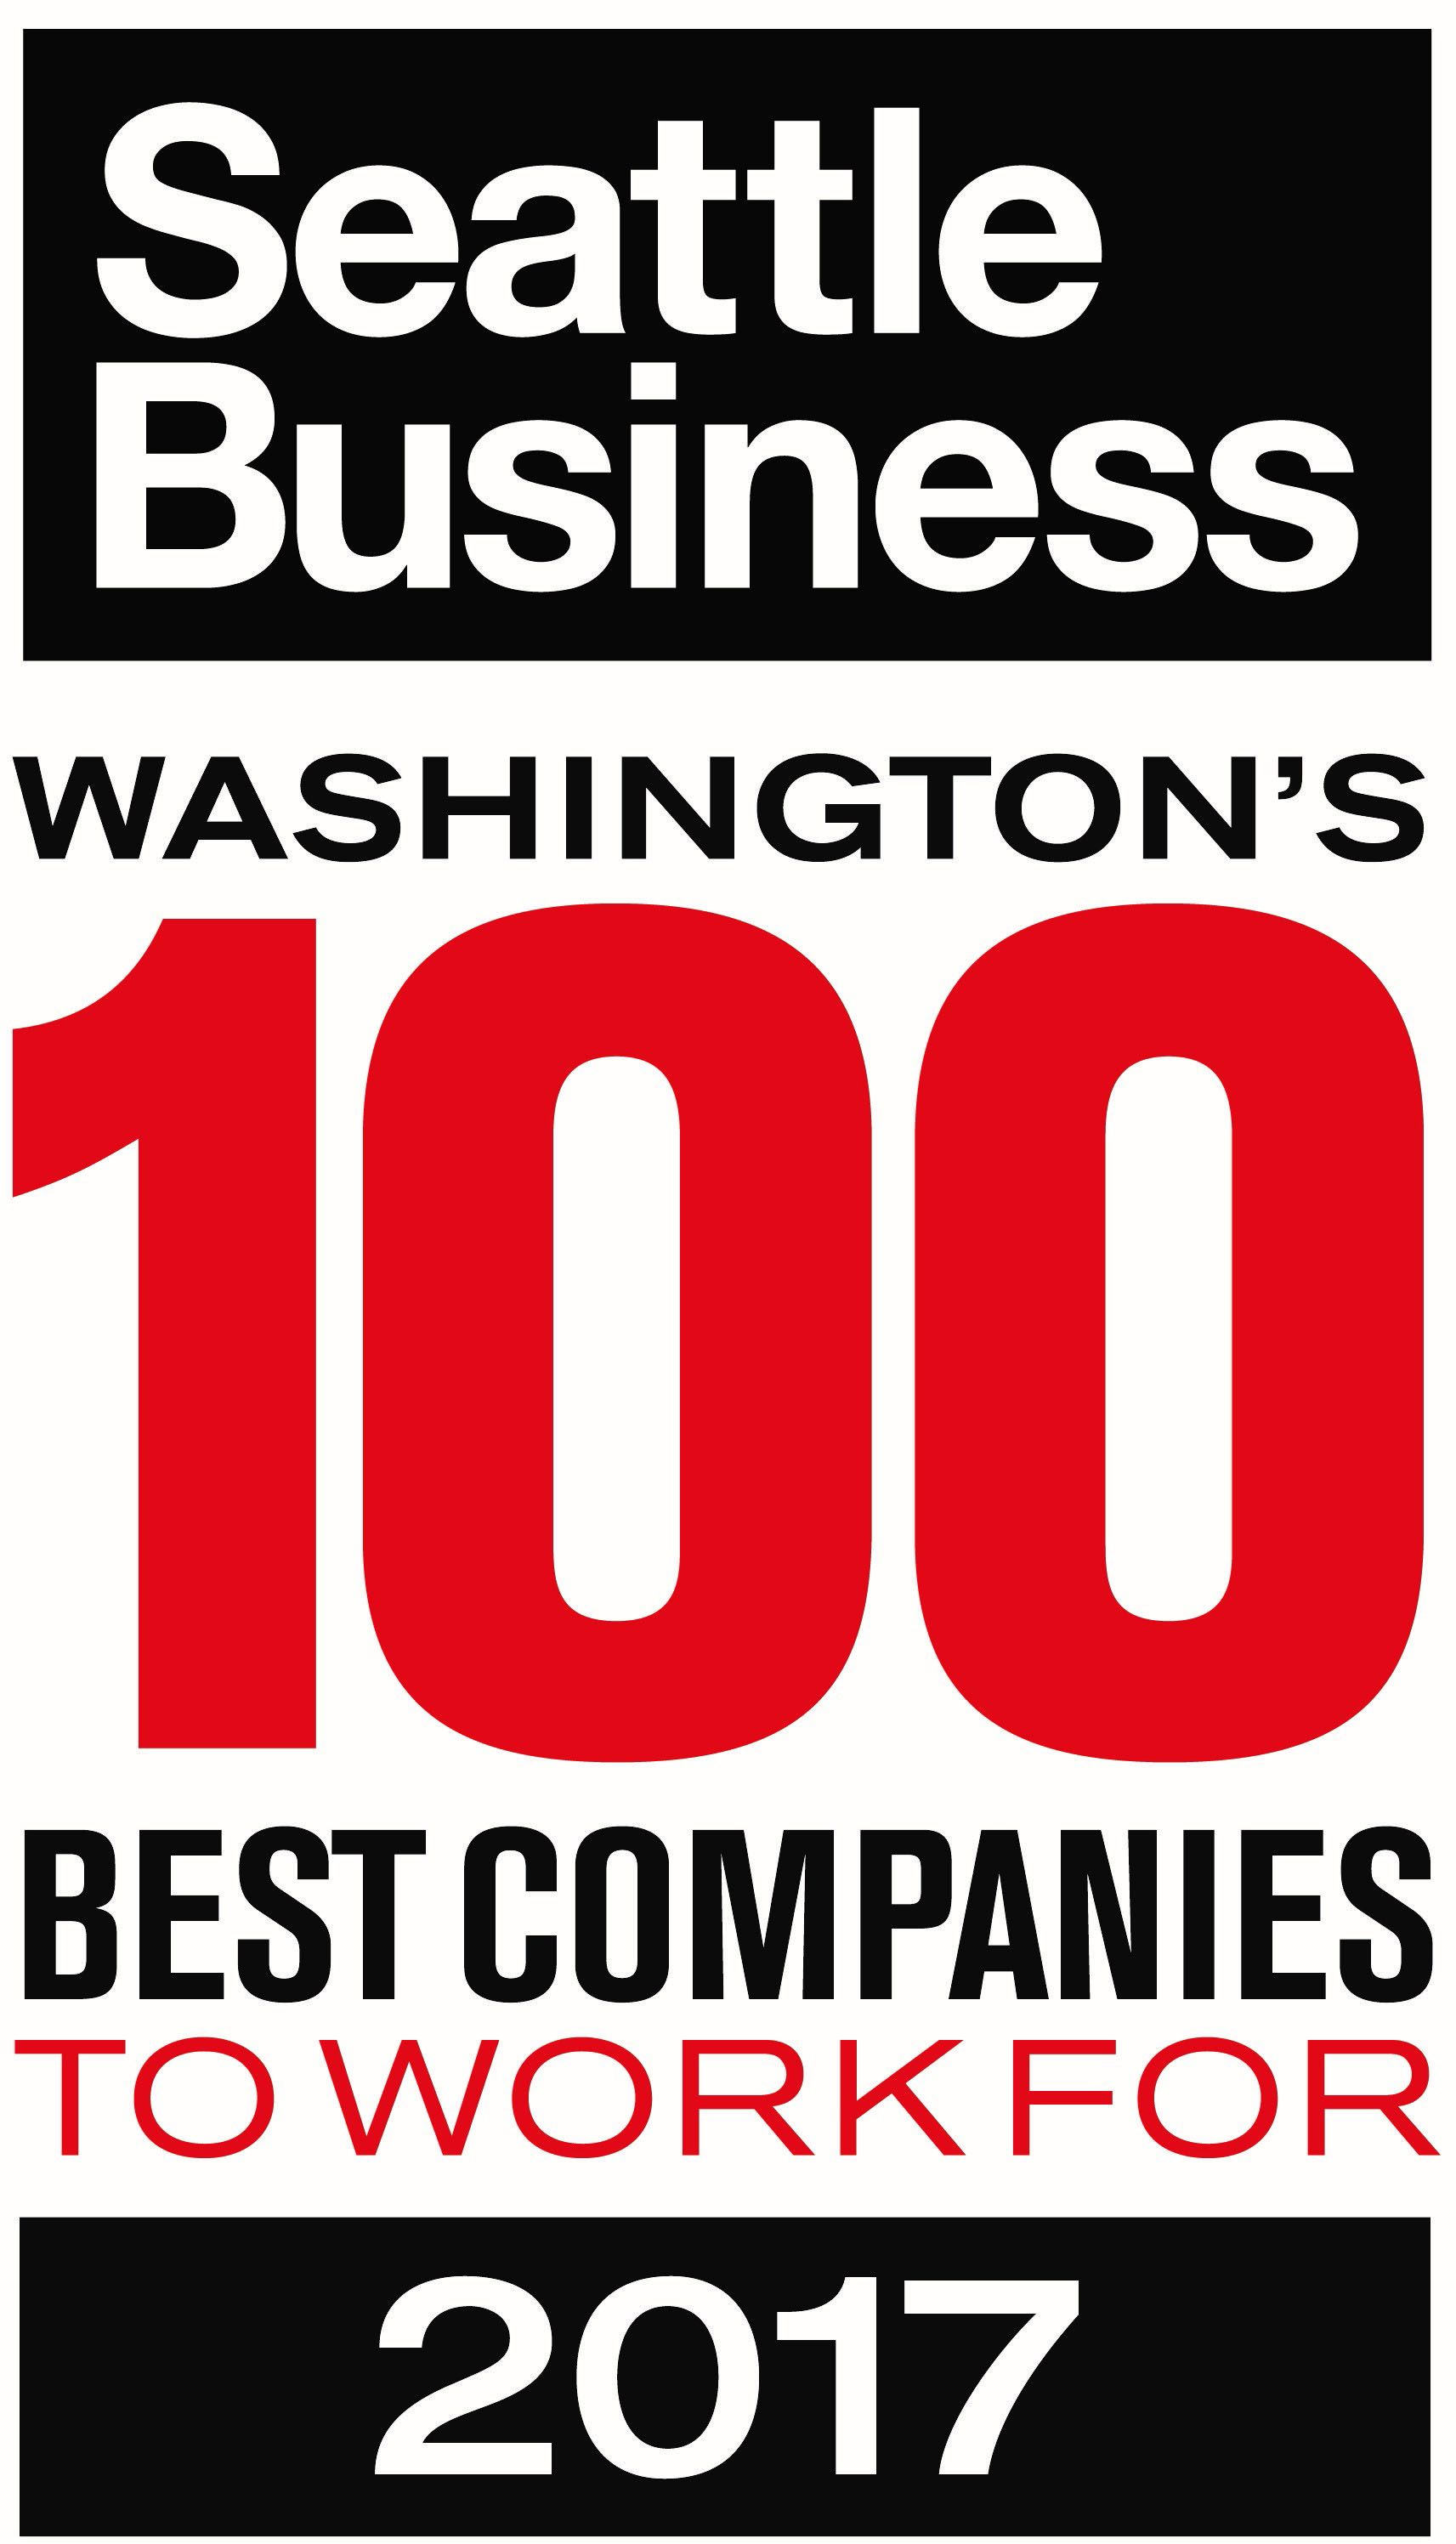 Seattle Business Washginton's 100 Best Companies to Work For 2017